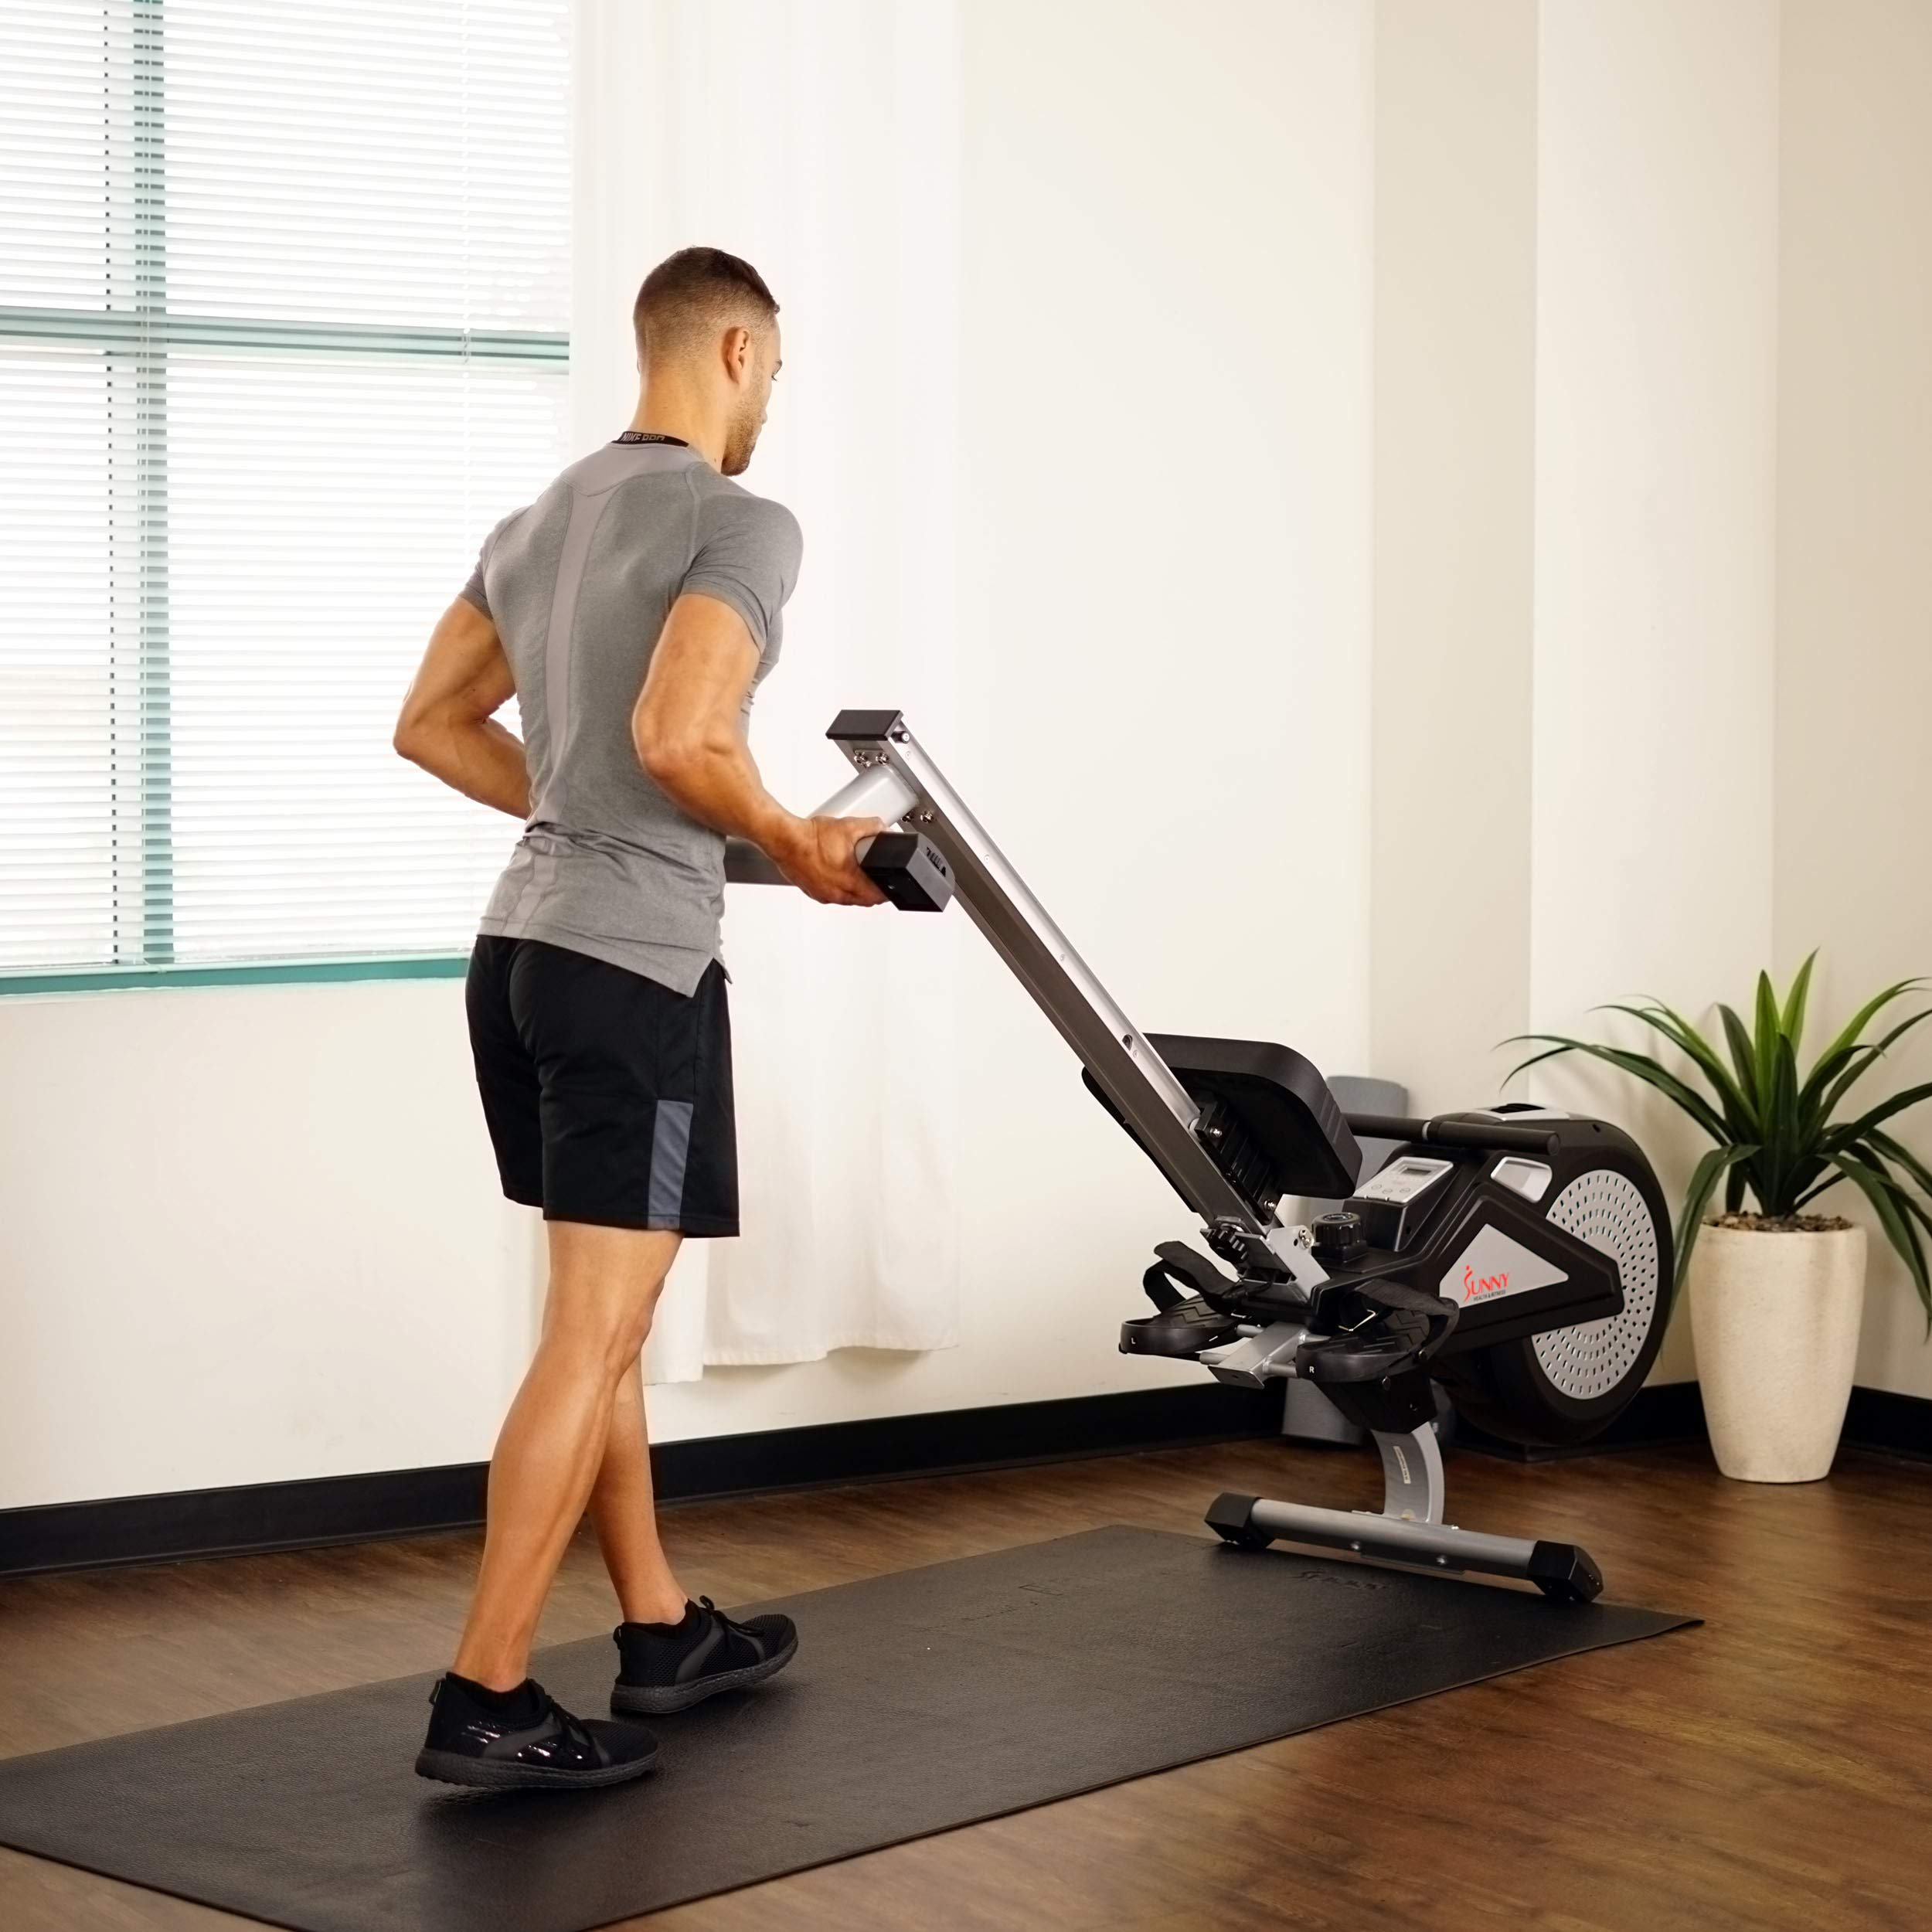 Sunny Health & Fitness Air Rower Rowing Machine w/ LCD Monitor, Dual Belt and Air Resistance SF-RW5623 by Sunny Health & Fitness (Image #17)